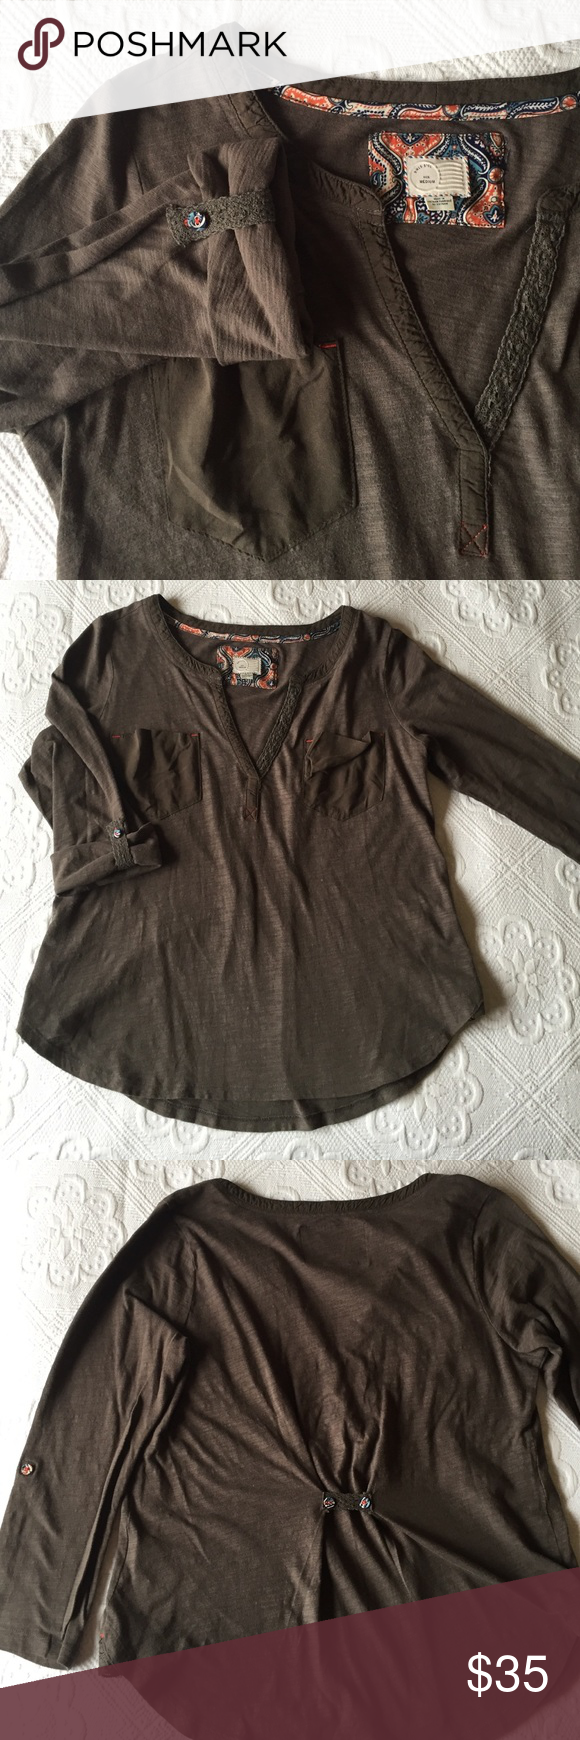 Anthropologie - 9-H15 STCL Postmark Top Anthropologie - 9-H15 STCL Postmark Top Anthropologie Tops